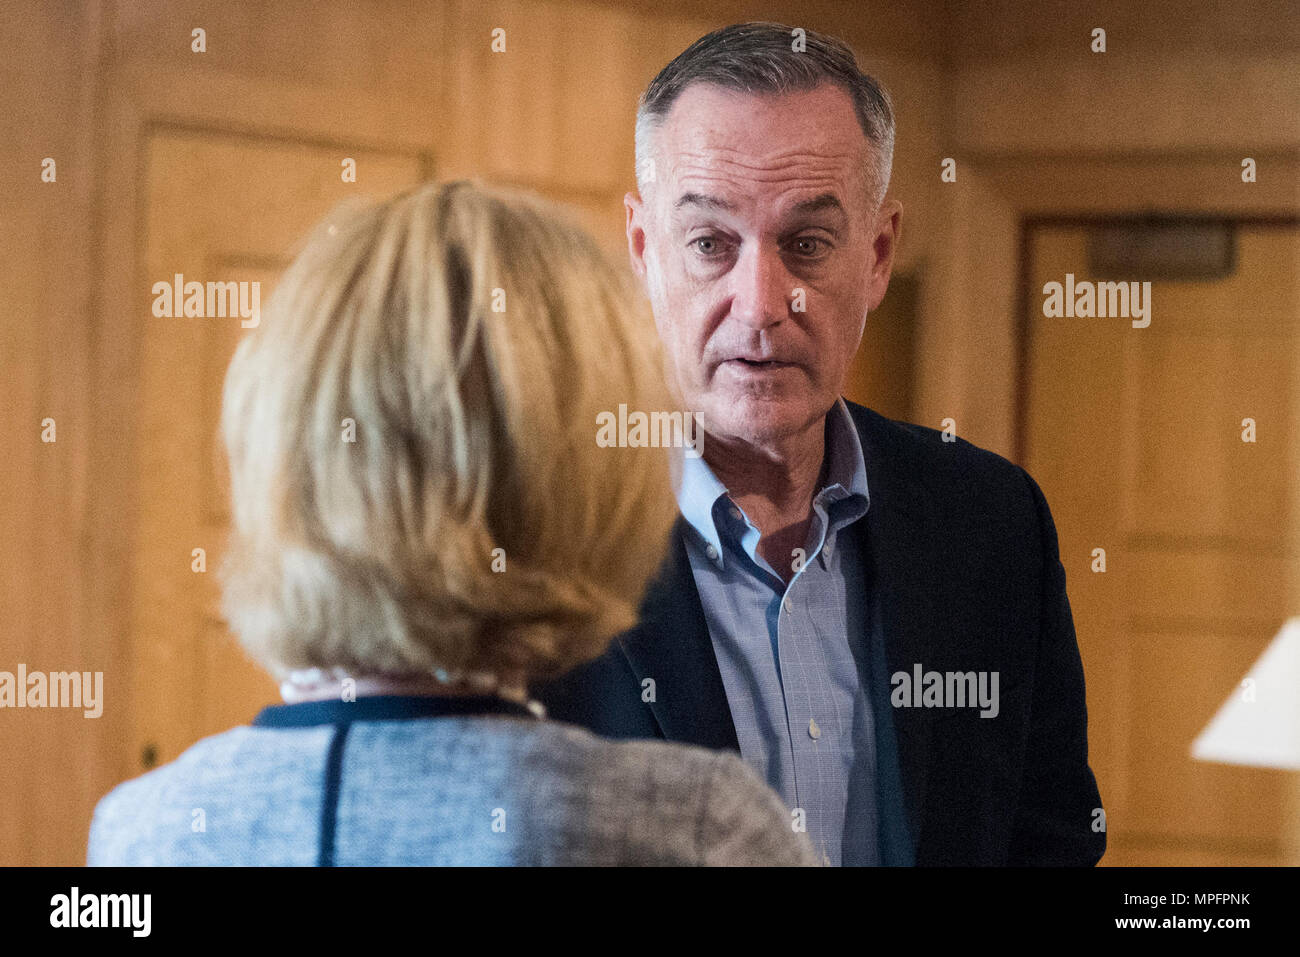 Marine Corps Gen. Joseph Dunford Jr., chairman of the Joint Chiefs of Staff, speaks with Alice G. Wells, U.S. Ambassador to Jordan, after arriving in Amman, Jordan, March 8, 2017. (Dept. of Defense photo by Navy Petty Officer 2nd Class Dominique A. Pineiro/Released) - Stock Image